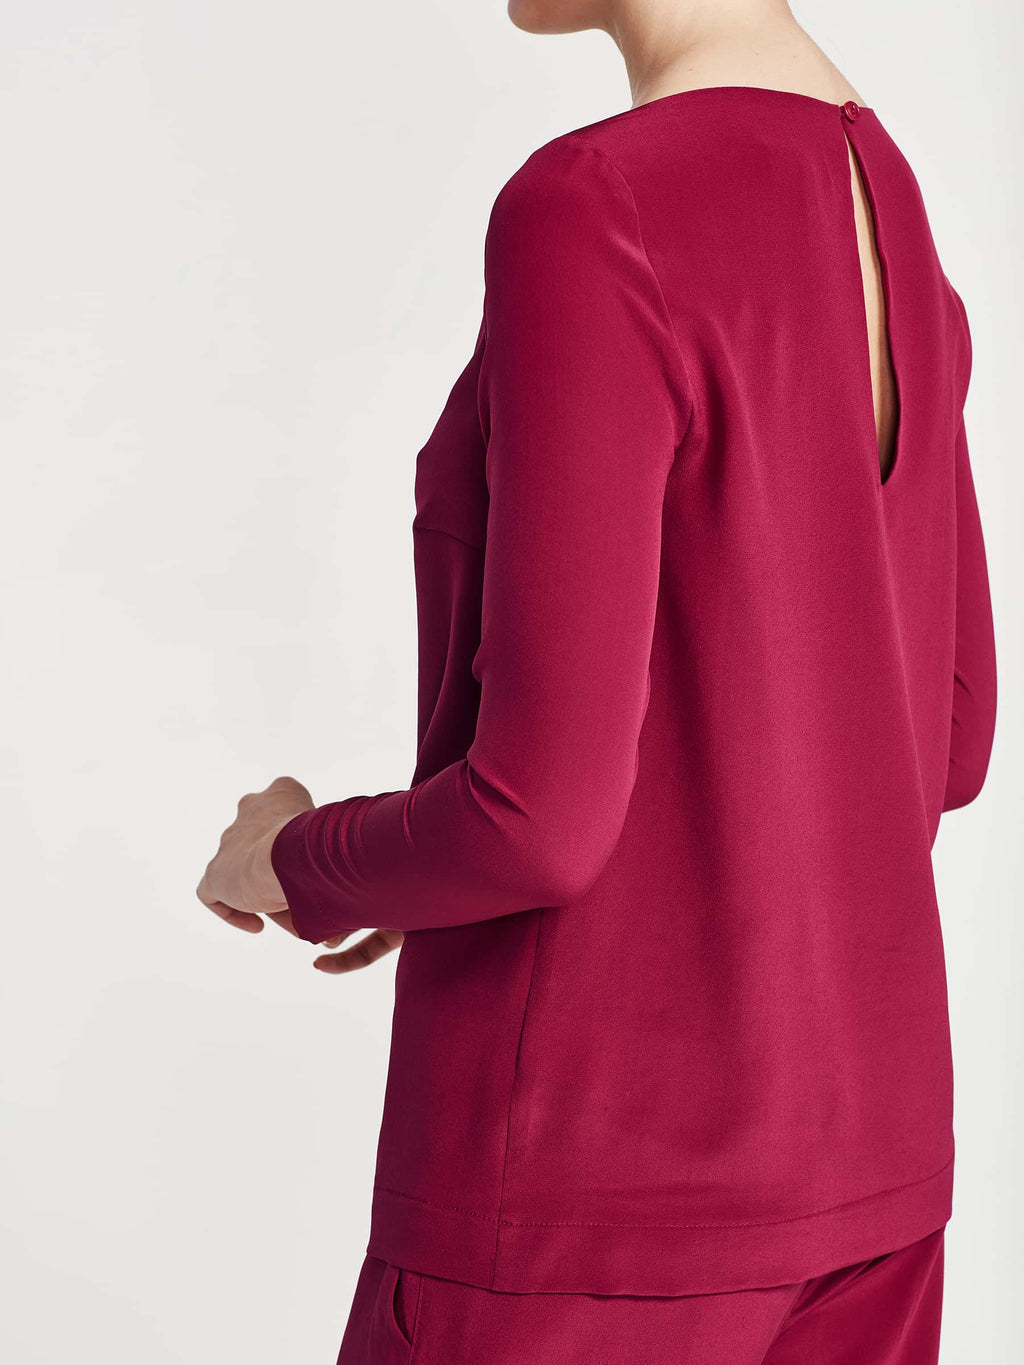 Margeaux Top (Silk Crepe De Chine) Magenta